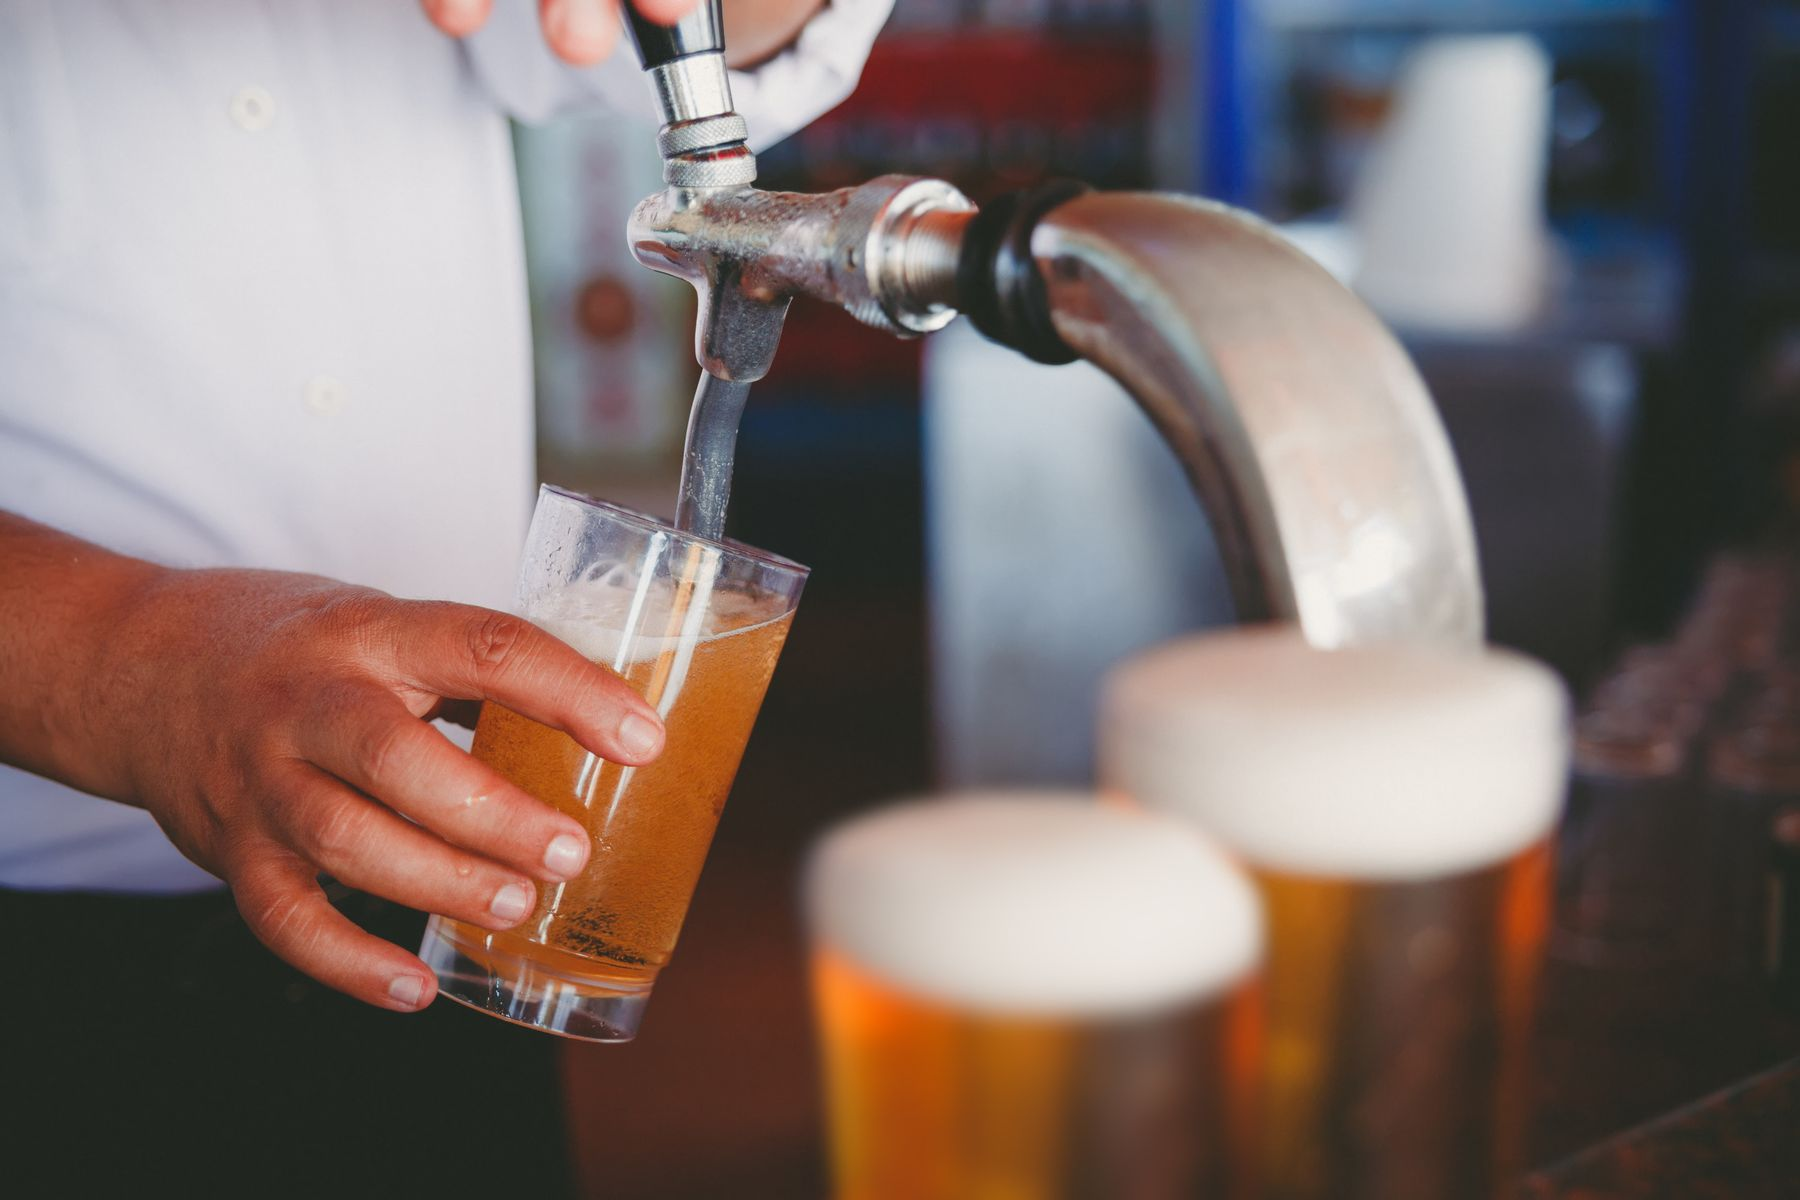 bartender pouring pints of beer on tap